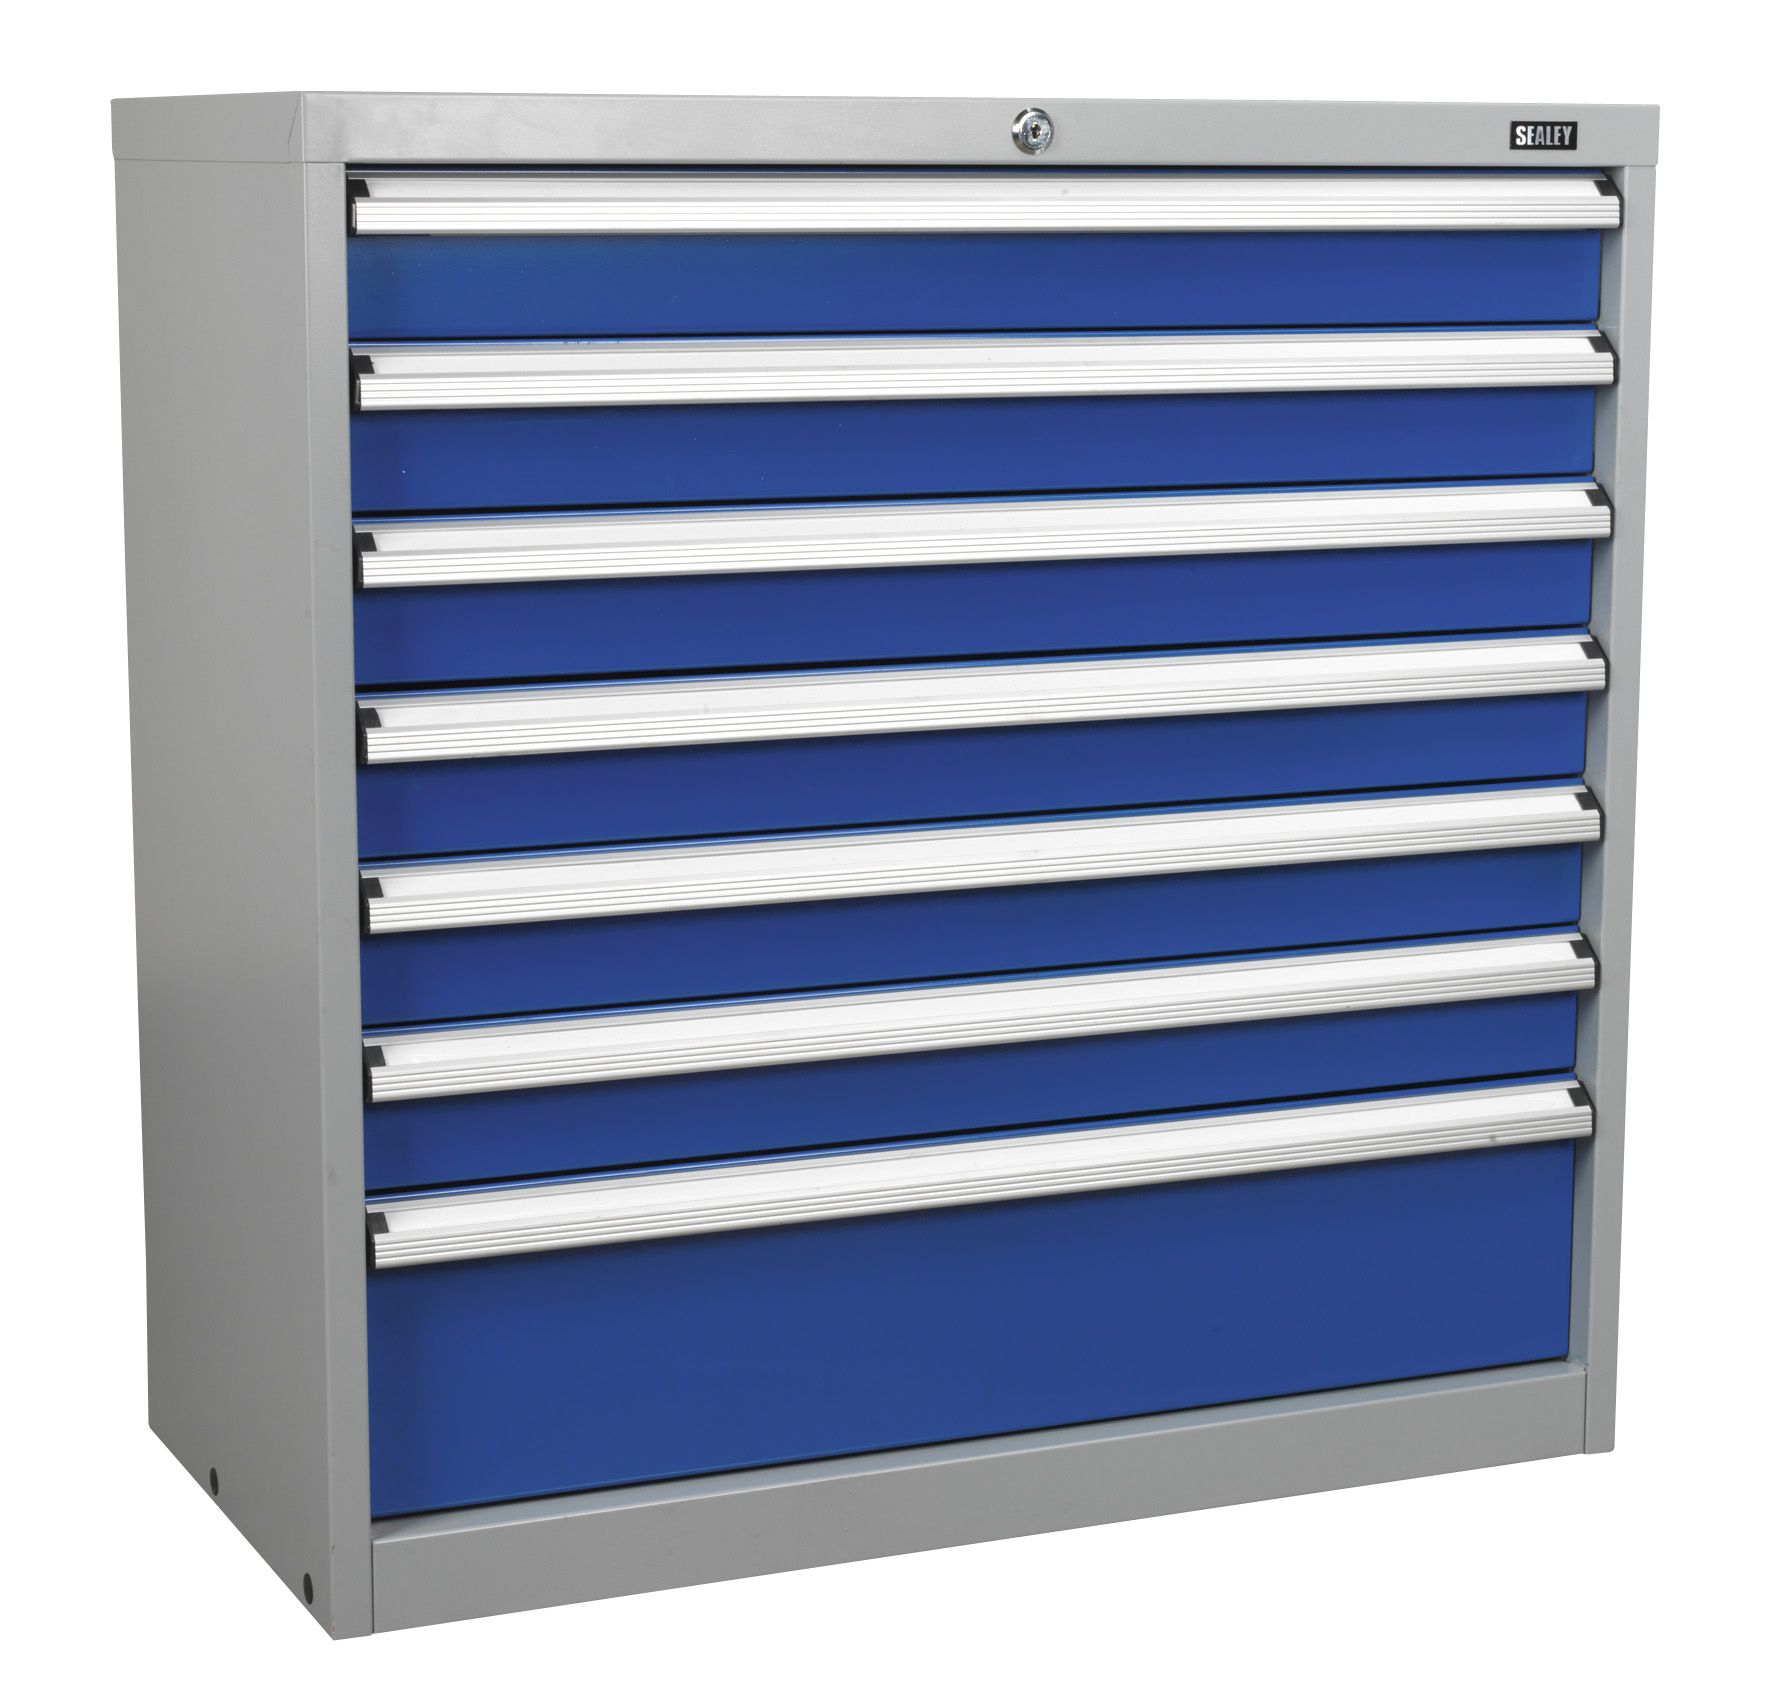 Sealey Industrial Cabinet 7 Drawer